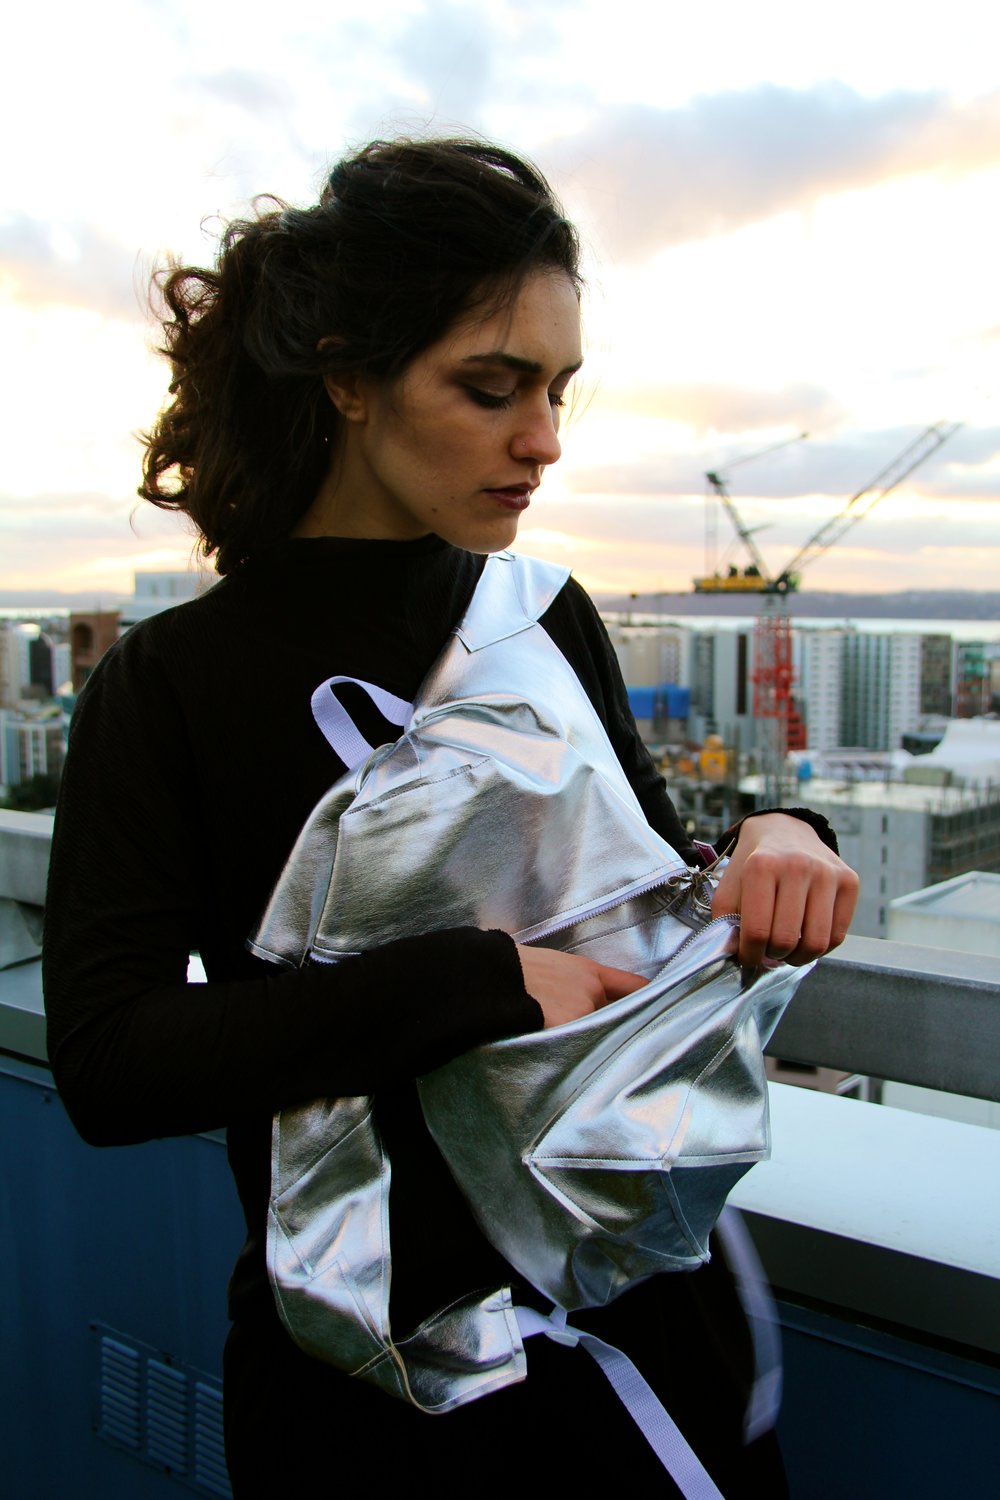 Camille Richard & Kendall Hayes Silver Cubism Backpack 2015 image 8.jpg